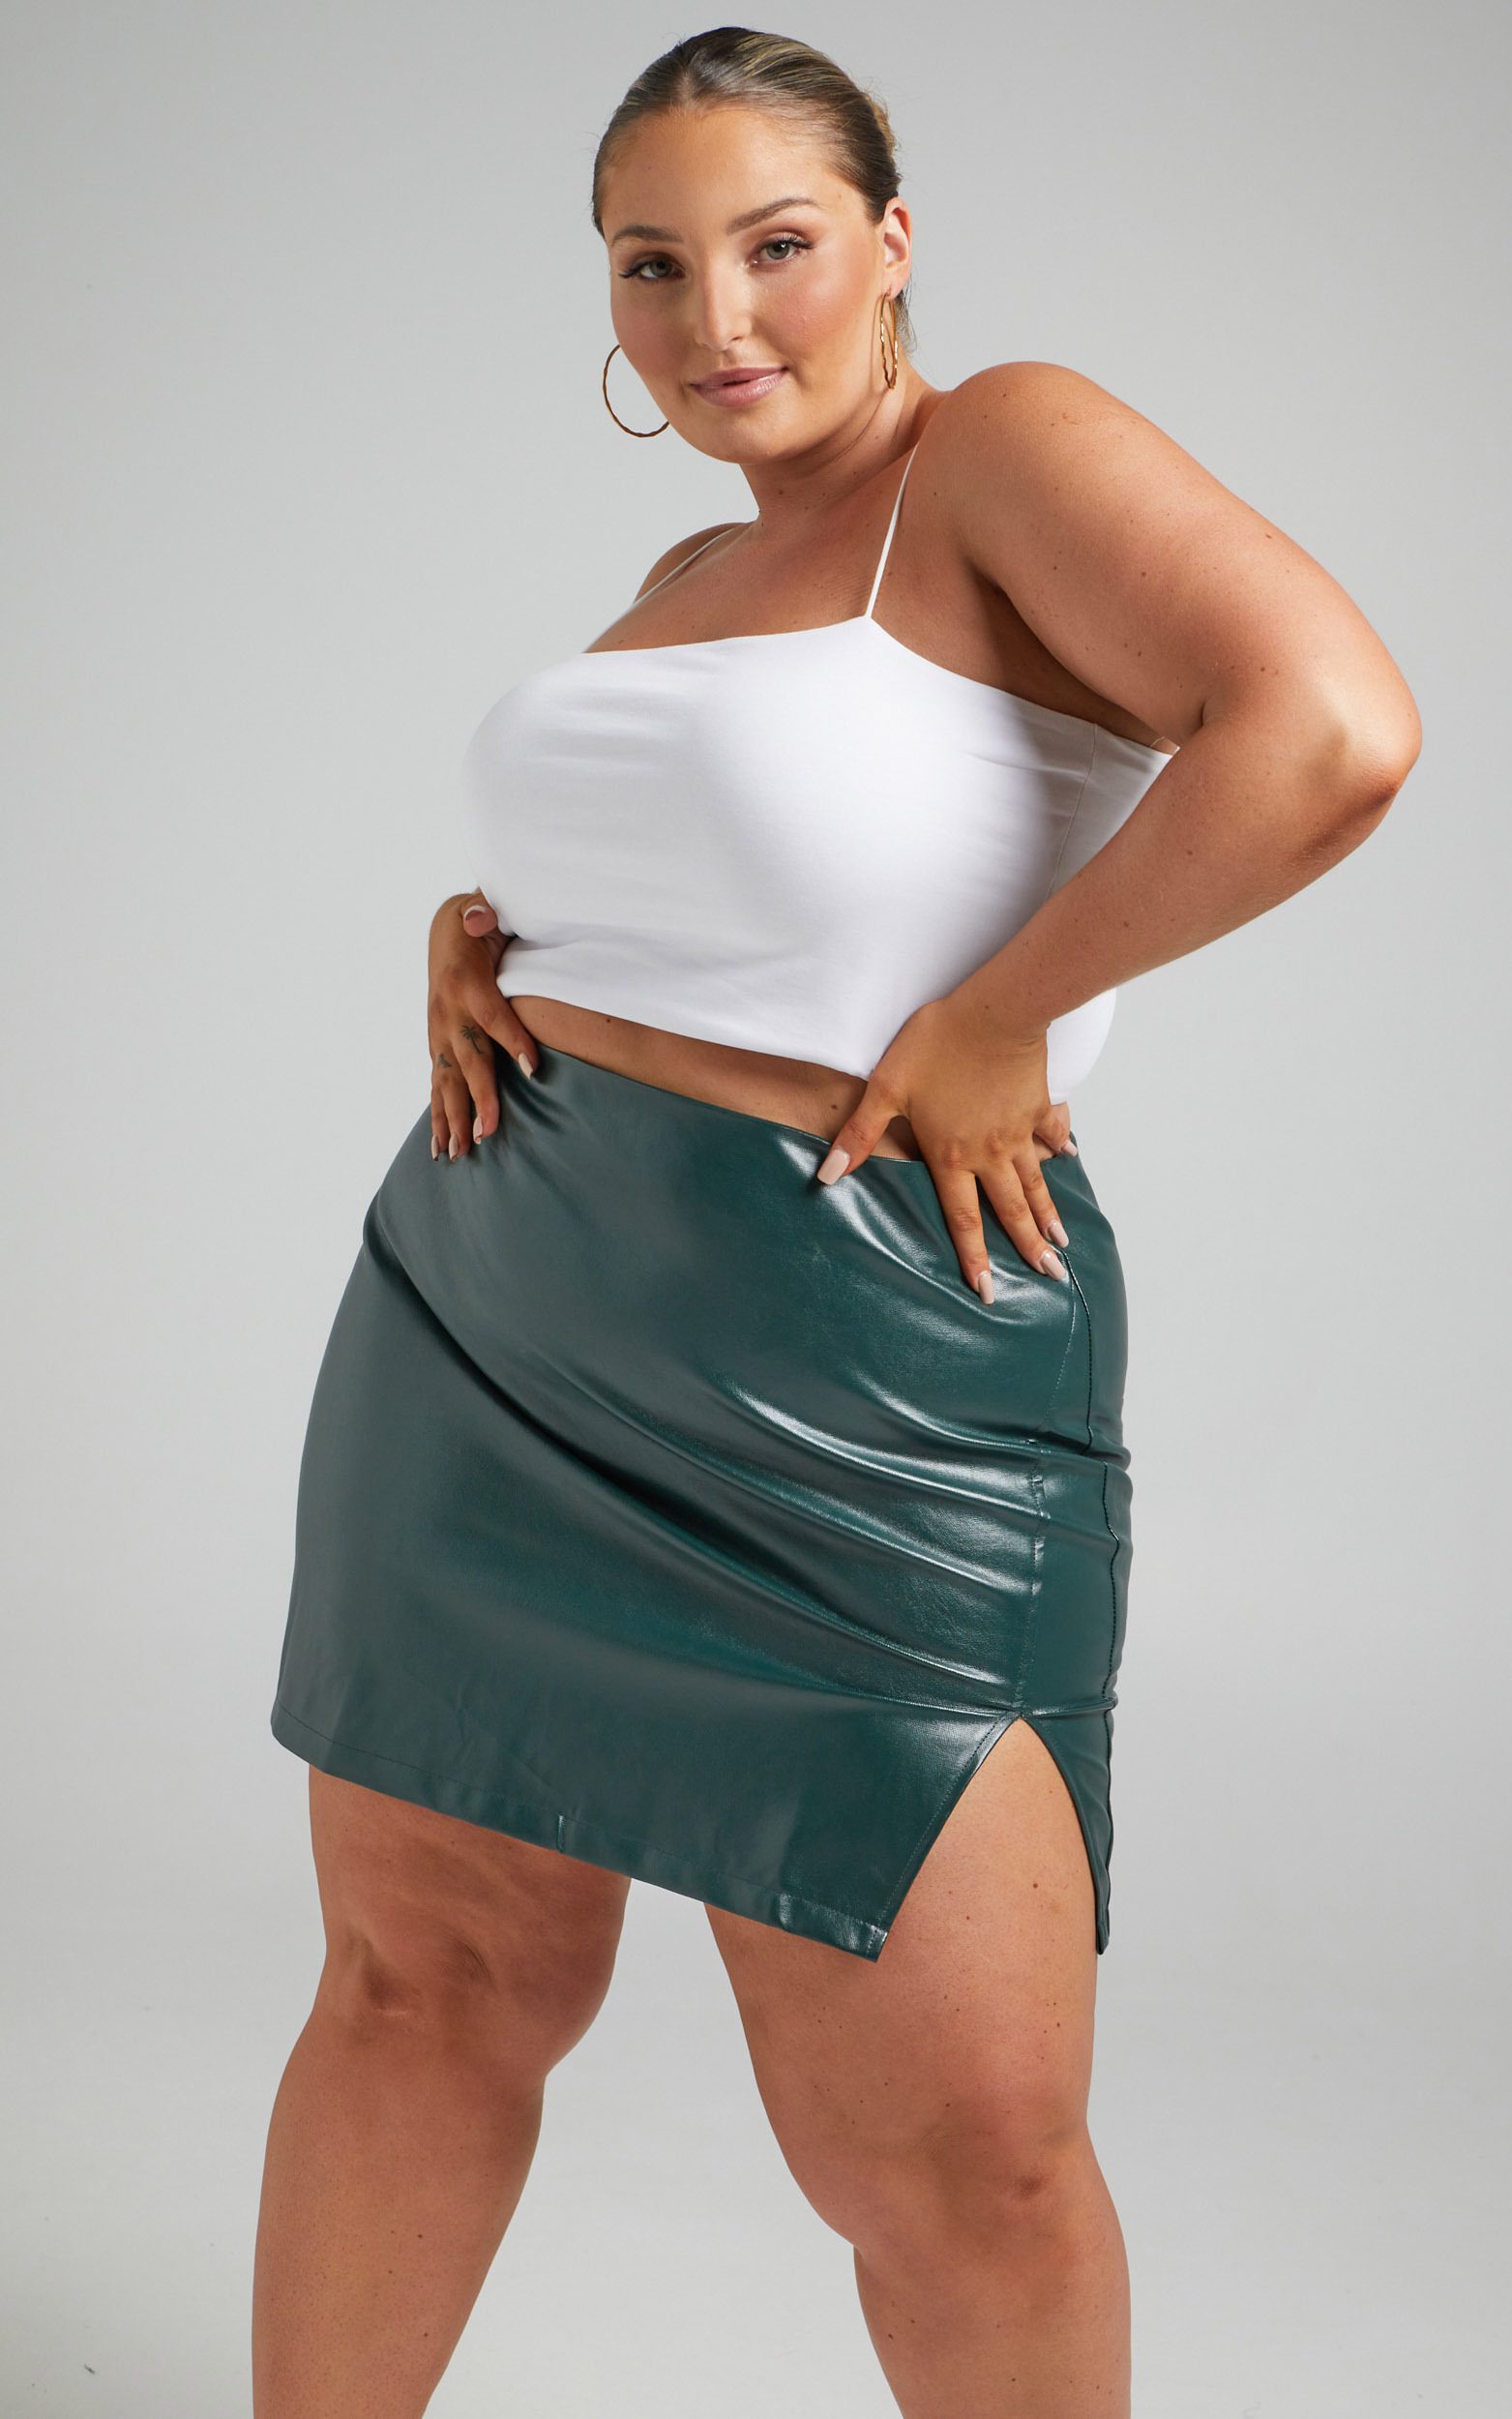 In The Name Of Love  Leatherette Mini Skirt in Emerald Leatherette - 04, GRN2, hi-res image number null